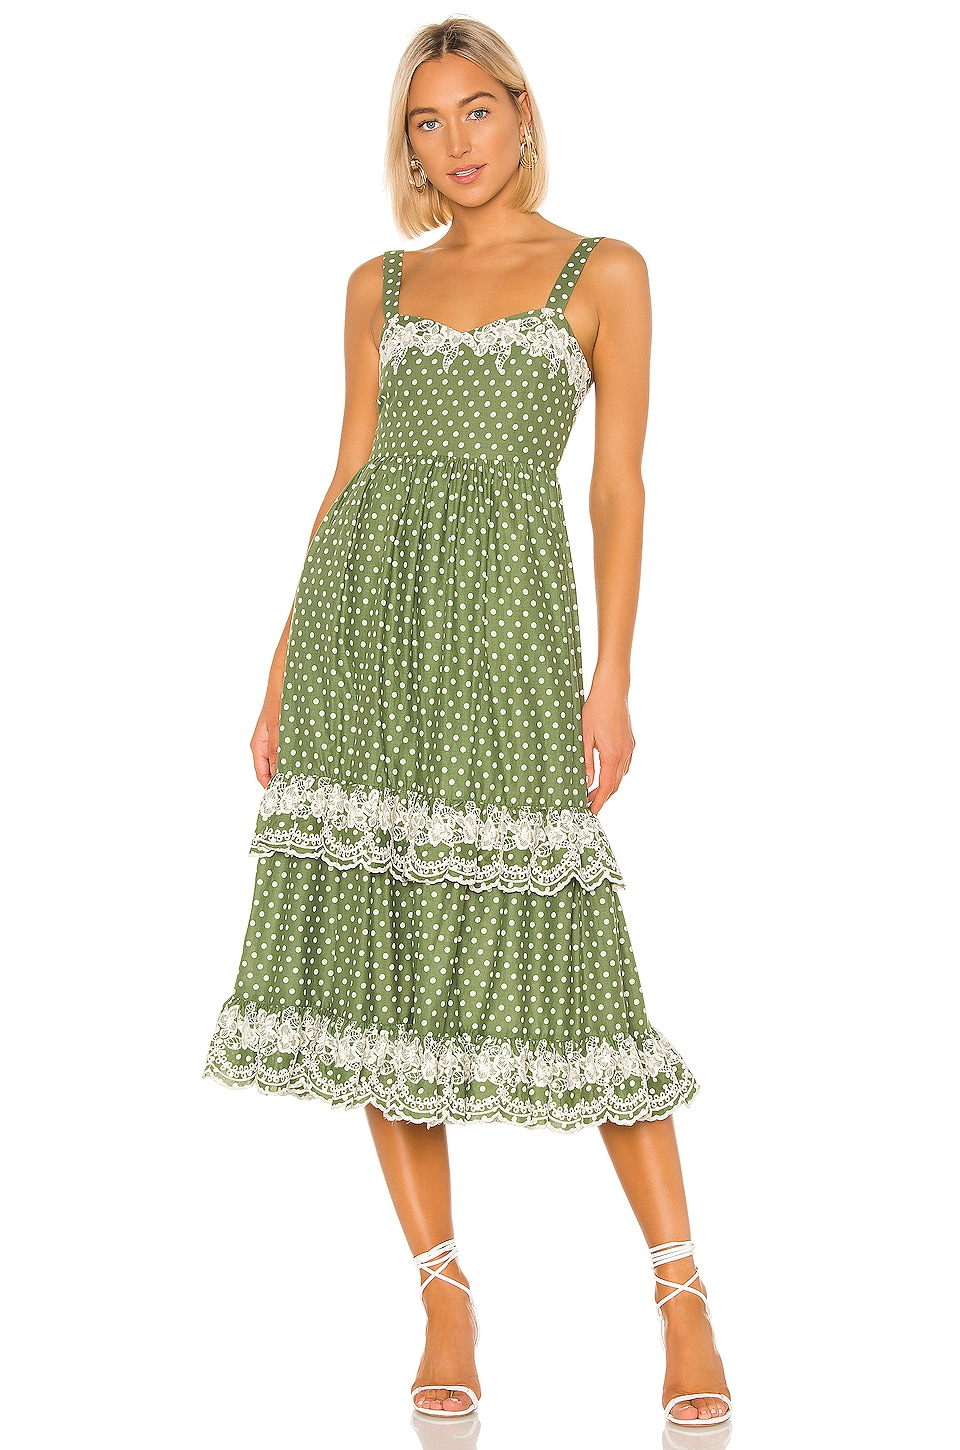 Tularosa Landry Dress in Moss Green Polka Dot